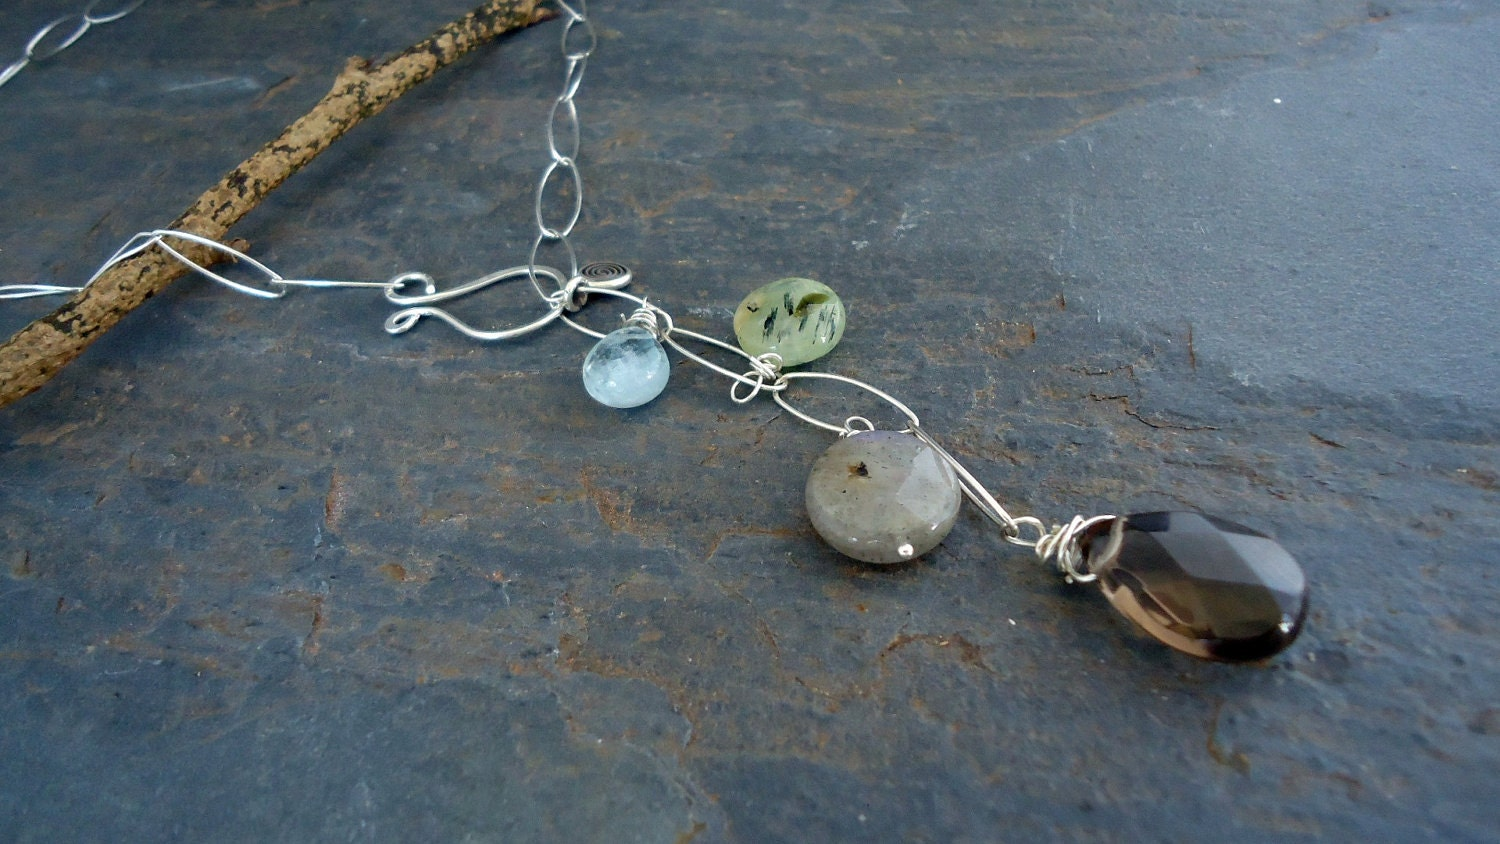 Falling,in,love,Jewelry,Necklace,metal_work,iseadesigns,modern_chic,sterling_silver,semiprecious,lariat,faceted_crystal,wire_wrapped,quartz,asymmetrical,Labradorite_necklace,sterling silver,aquamarine,green quartz,smoky quartz,labradorite